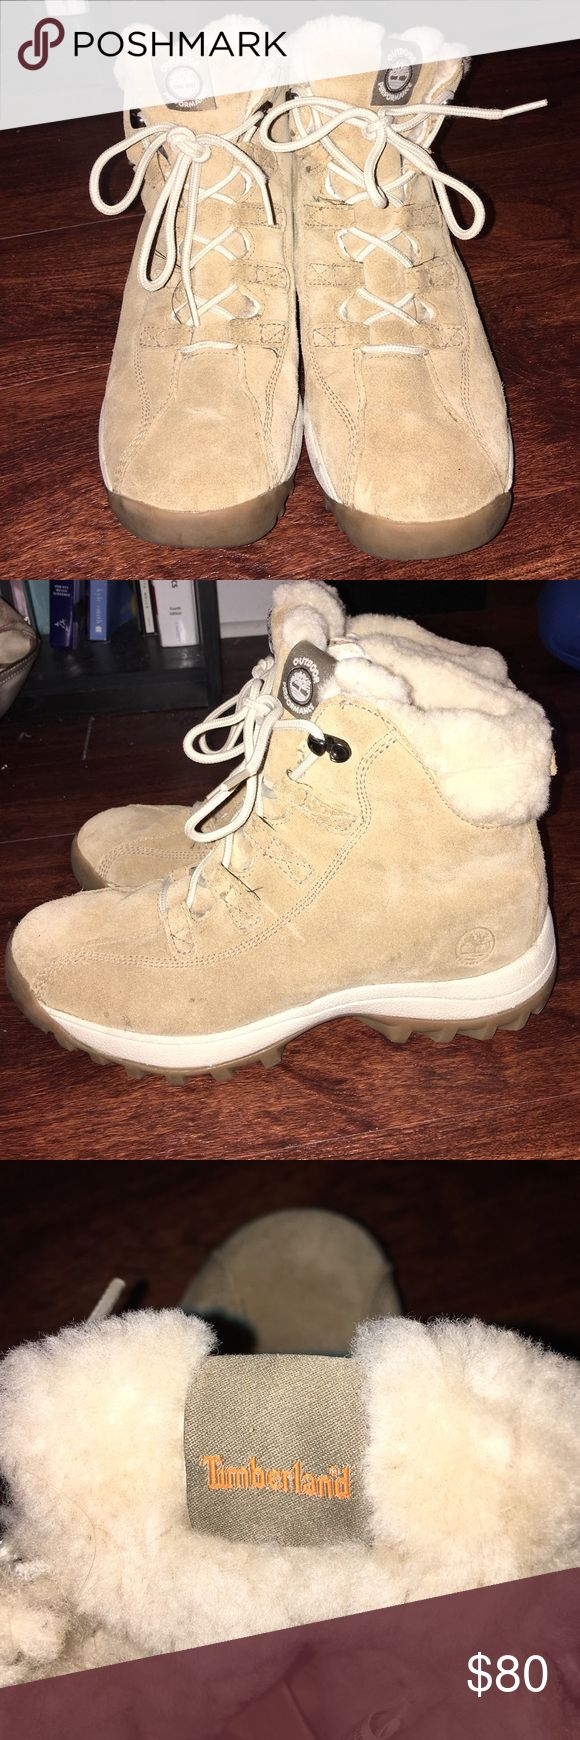 TIMBERLAND BOOTS!!!! 😍😍 Authentic, hardly worn, great condition timberland winter boots!!!!! 💕 Timberland Shoes Winter & Rain Boots